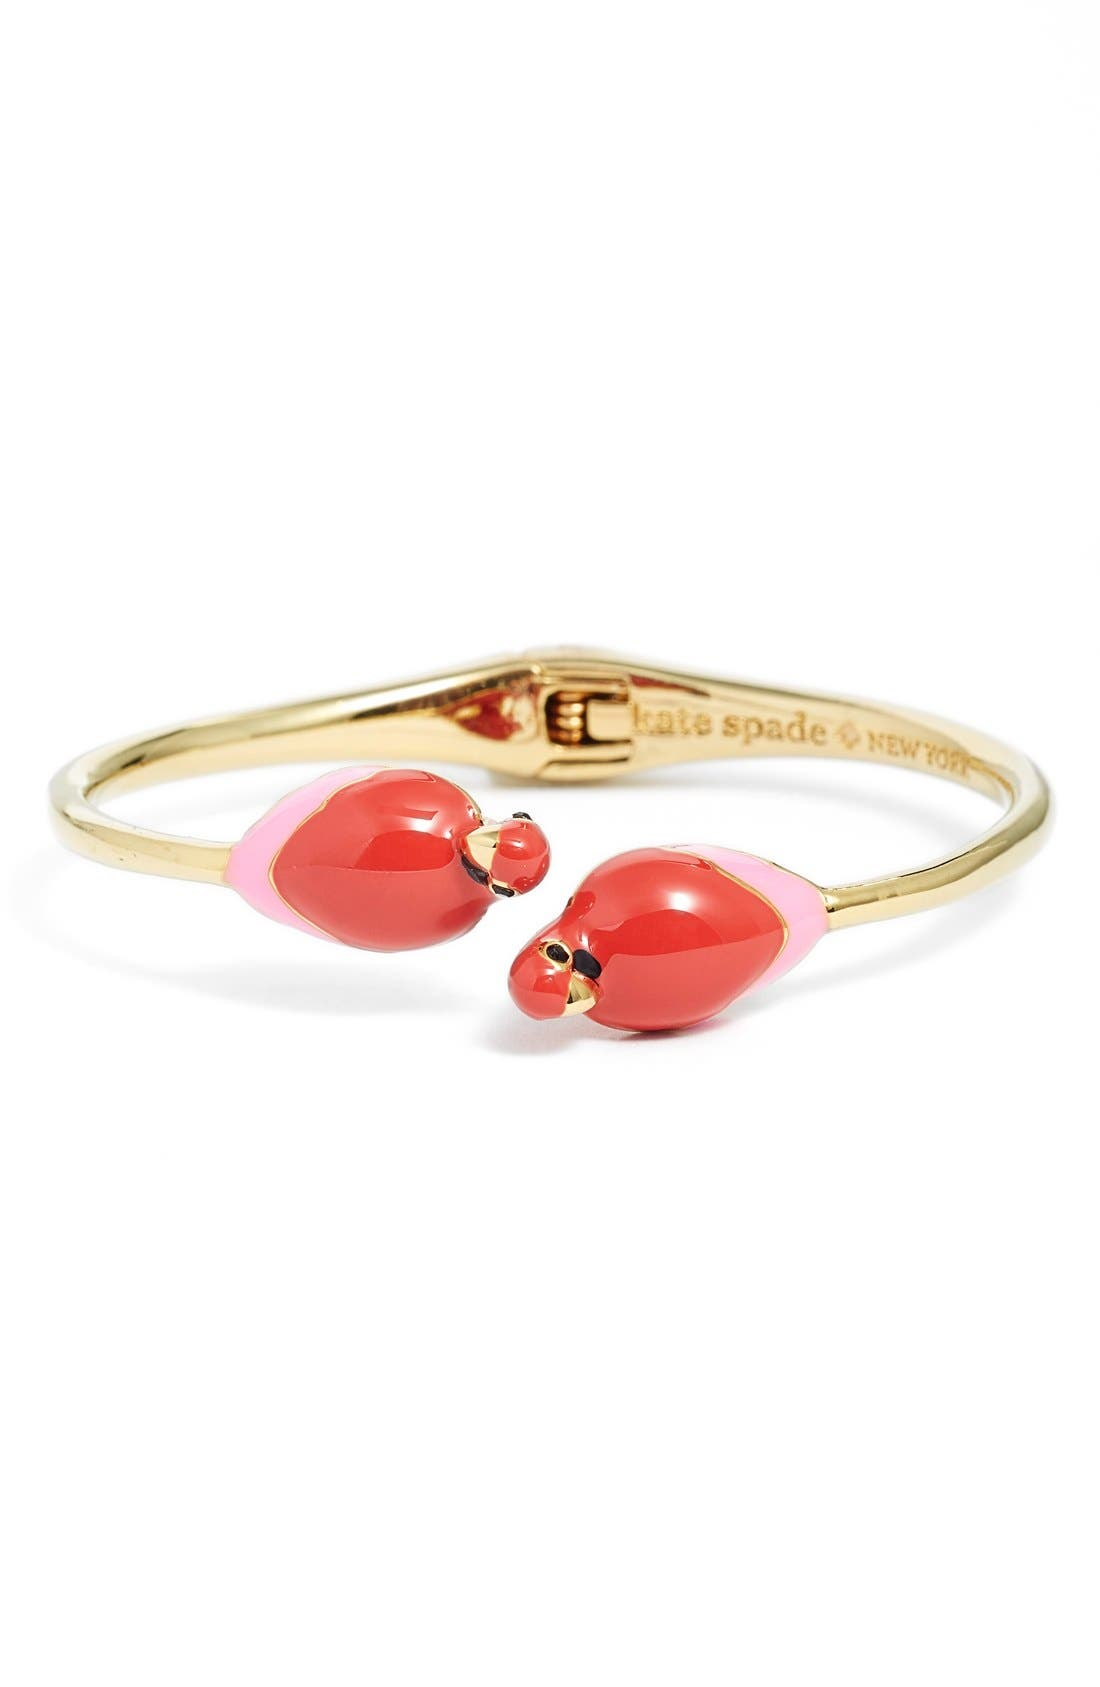 Main Image - kate spade new york 'out of office' parrot bangle